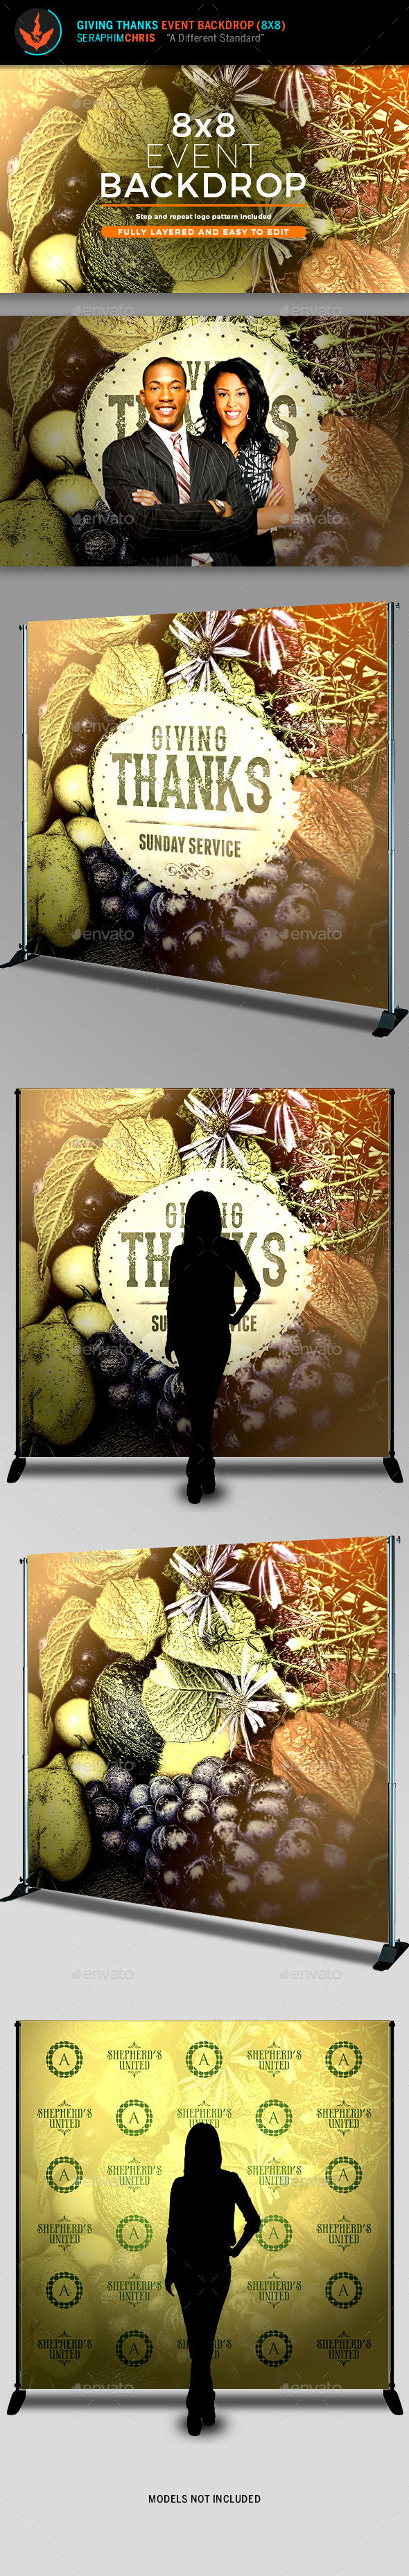 Giving Thanks 8x8 Event Backdrop Template - Signage Print Templates